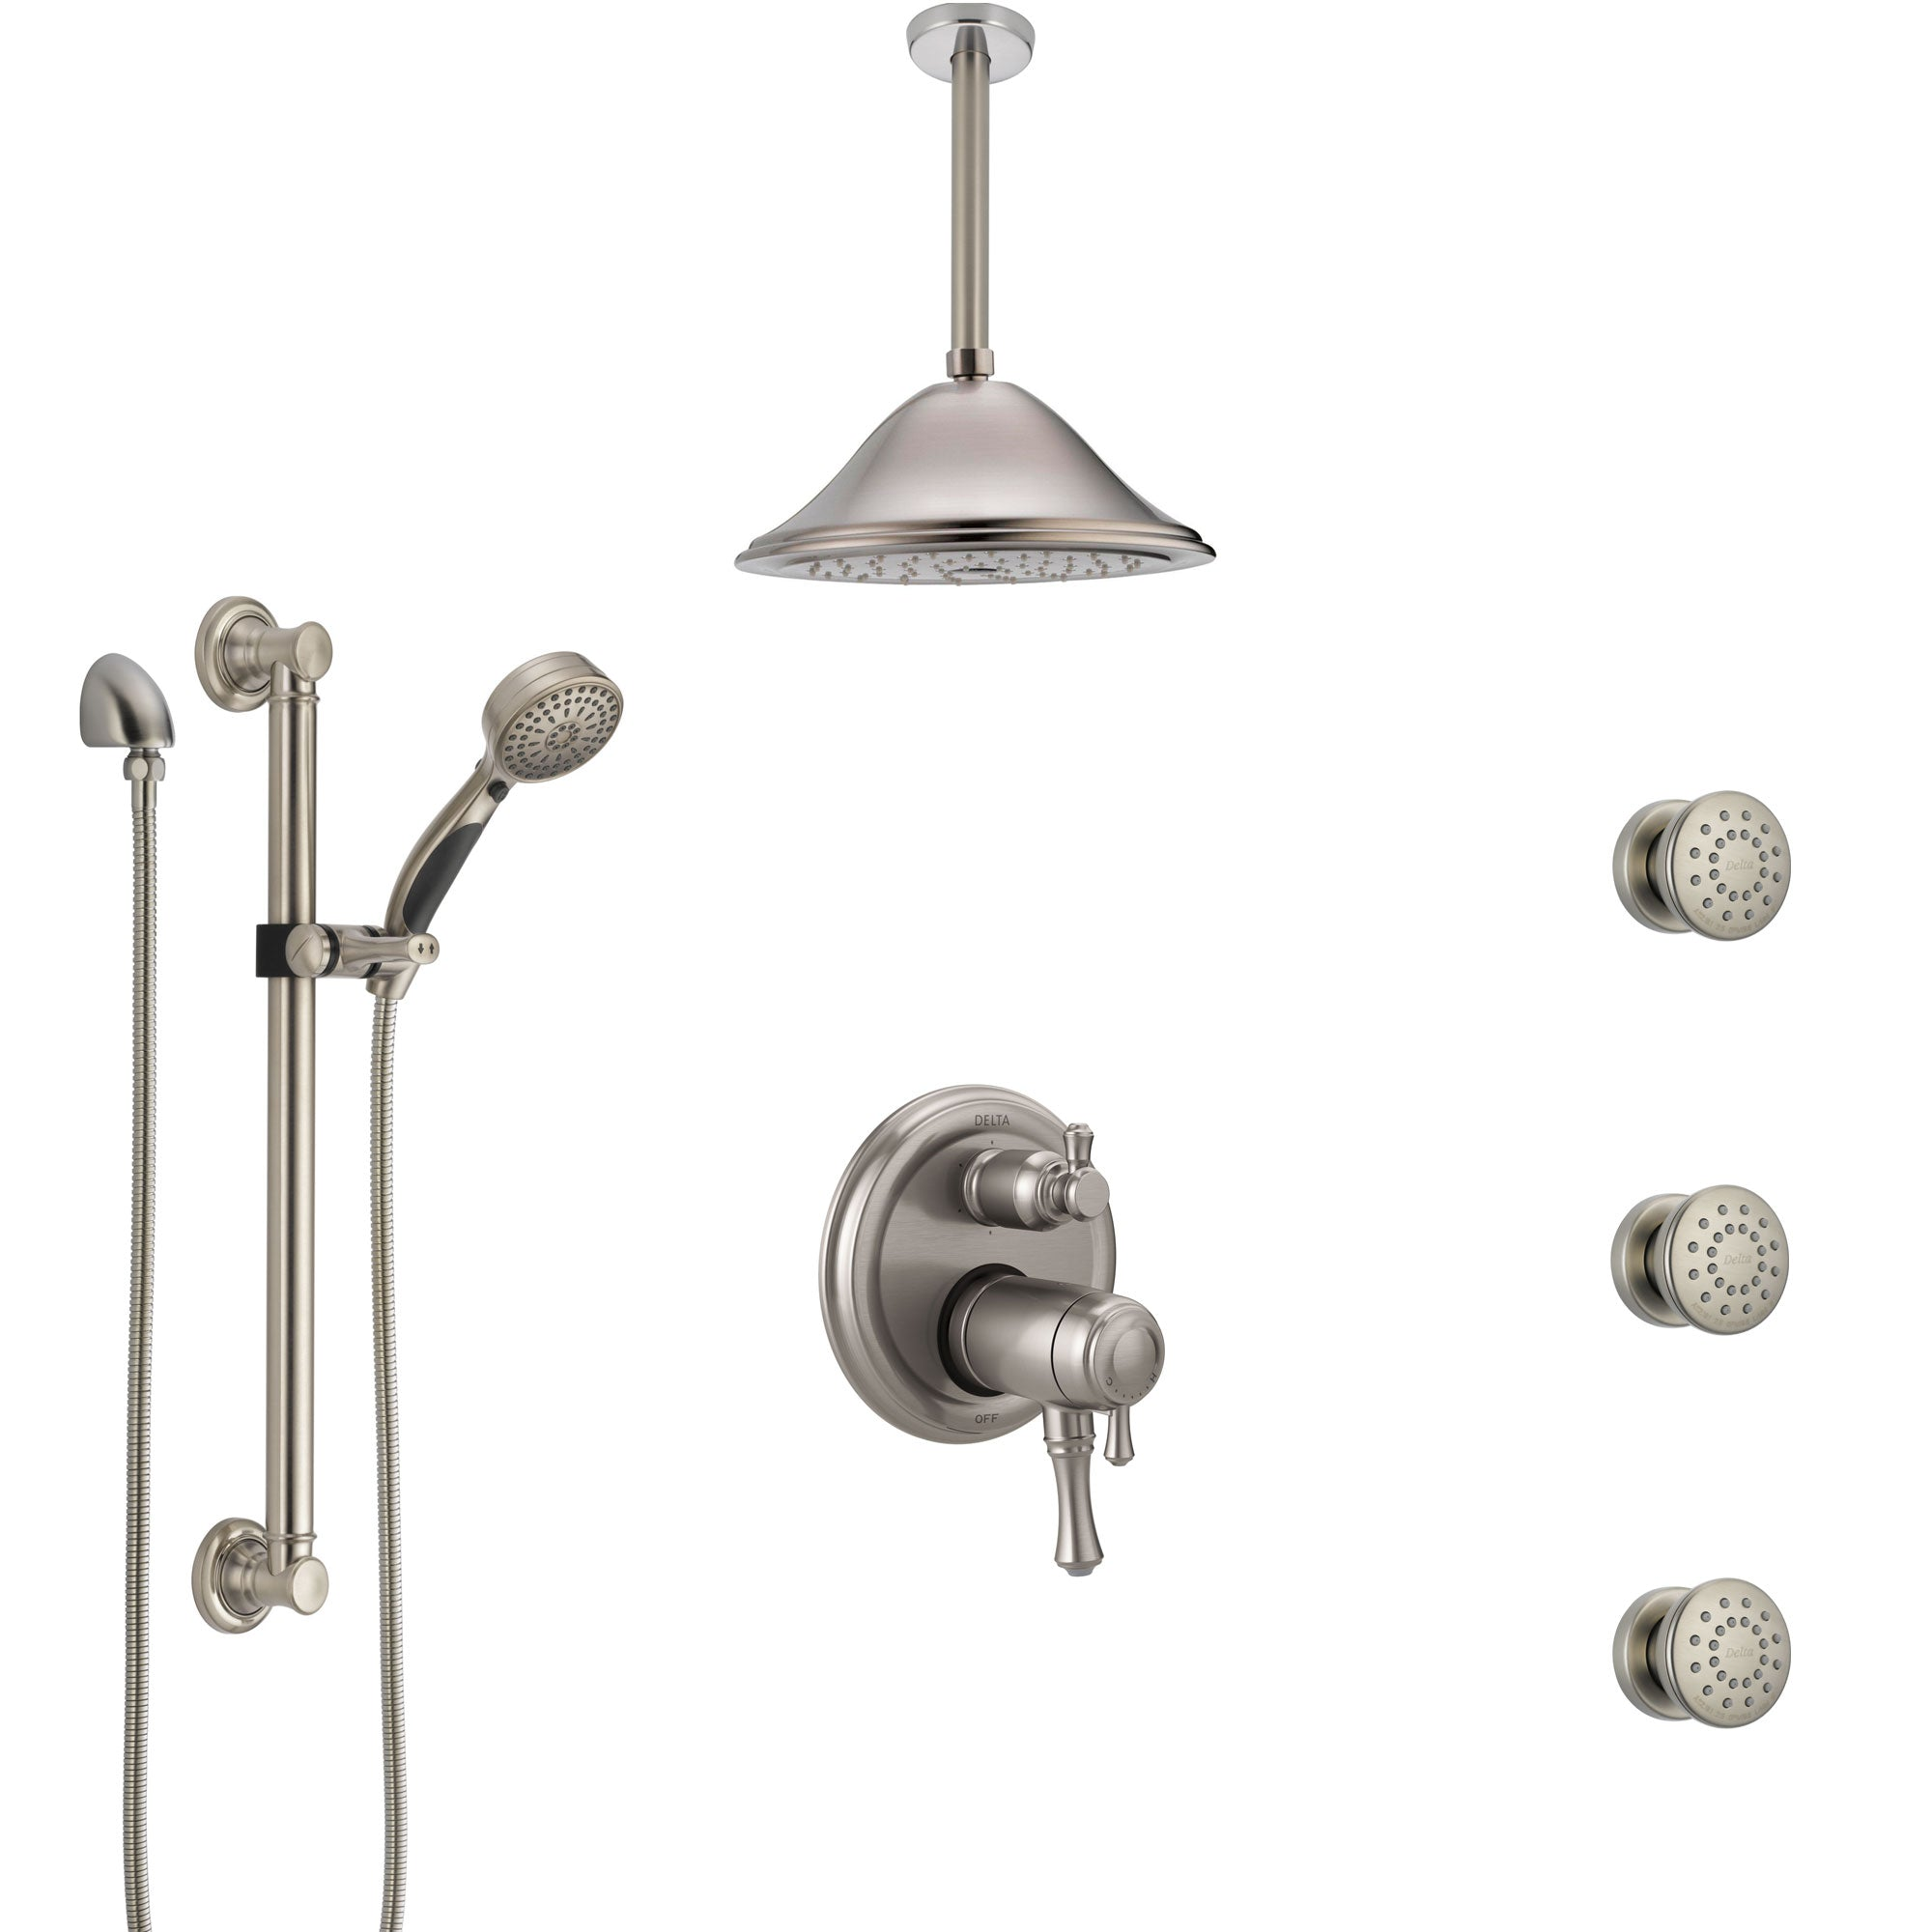 Delta Cassidy Dual Thermostatic Control Stainless Steel Finish Shower System, Ceiling Showerhead, 3 Body Jets, Grab Bar Hand Spray SS27T997SS4